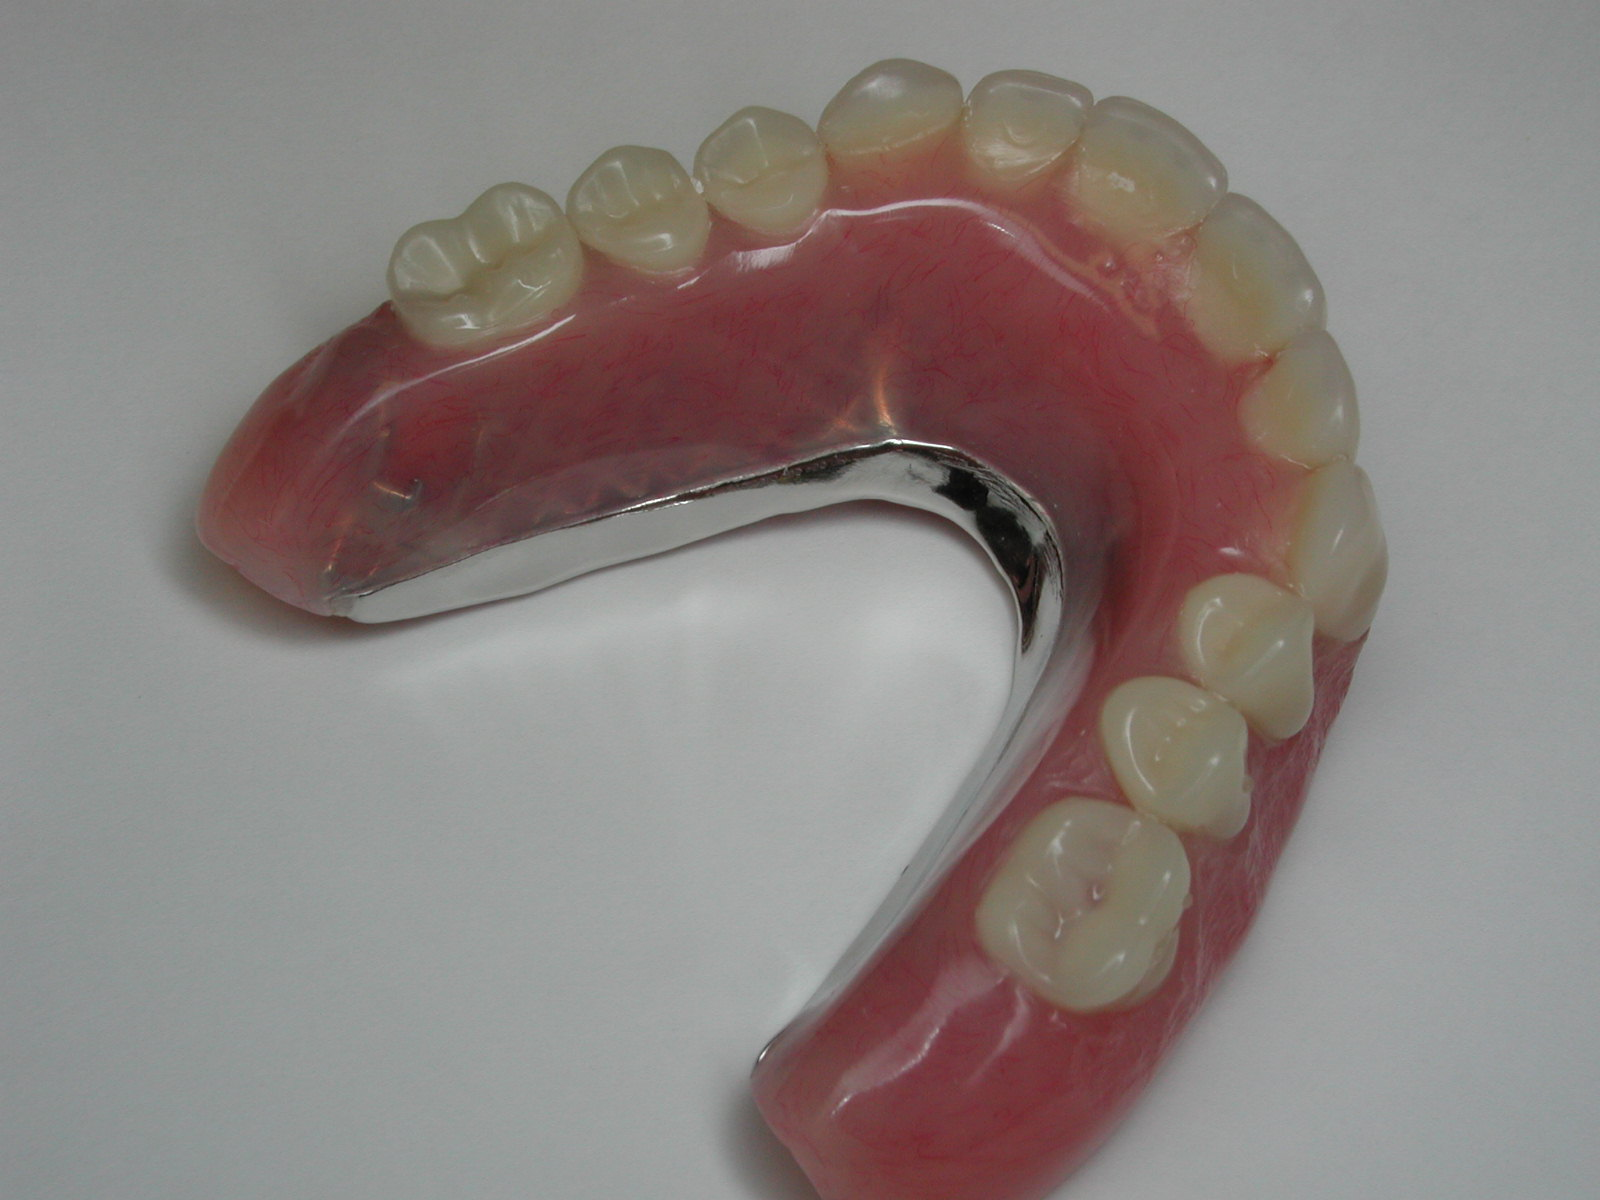 Removable Prosthesis